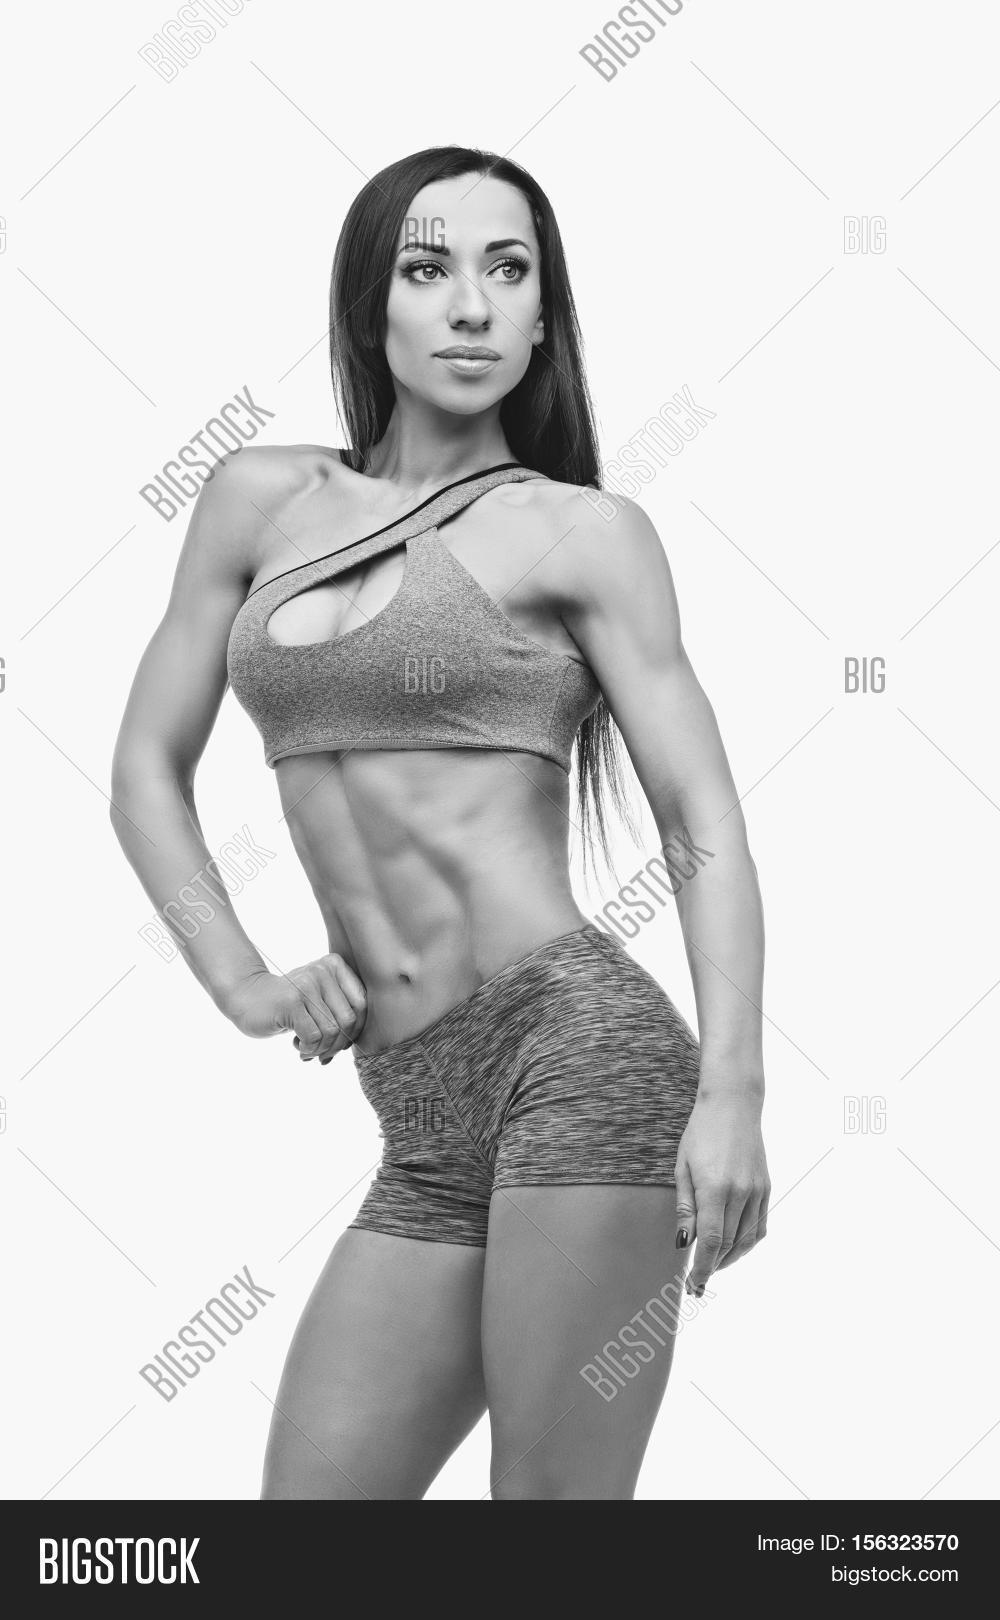 f147a3e0b8 Beautiful fit muscular young woman in sport bra and shorts isolated on  white background. Perfect